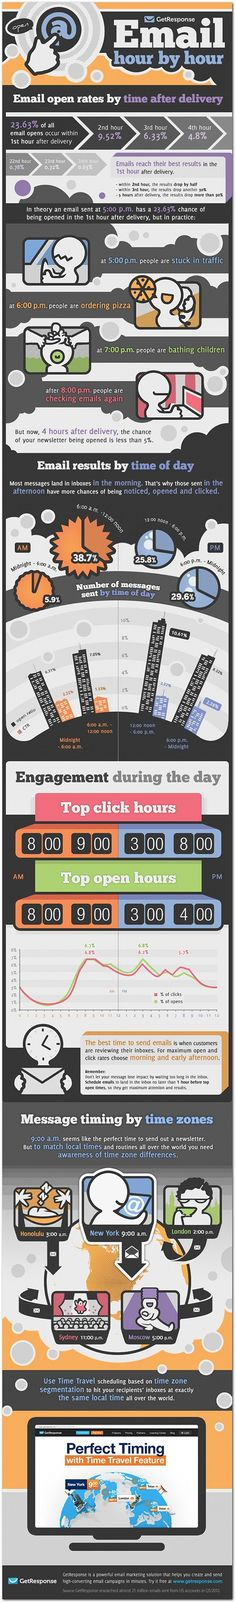 Email responsiveness by the hour. #email #marketing